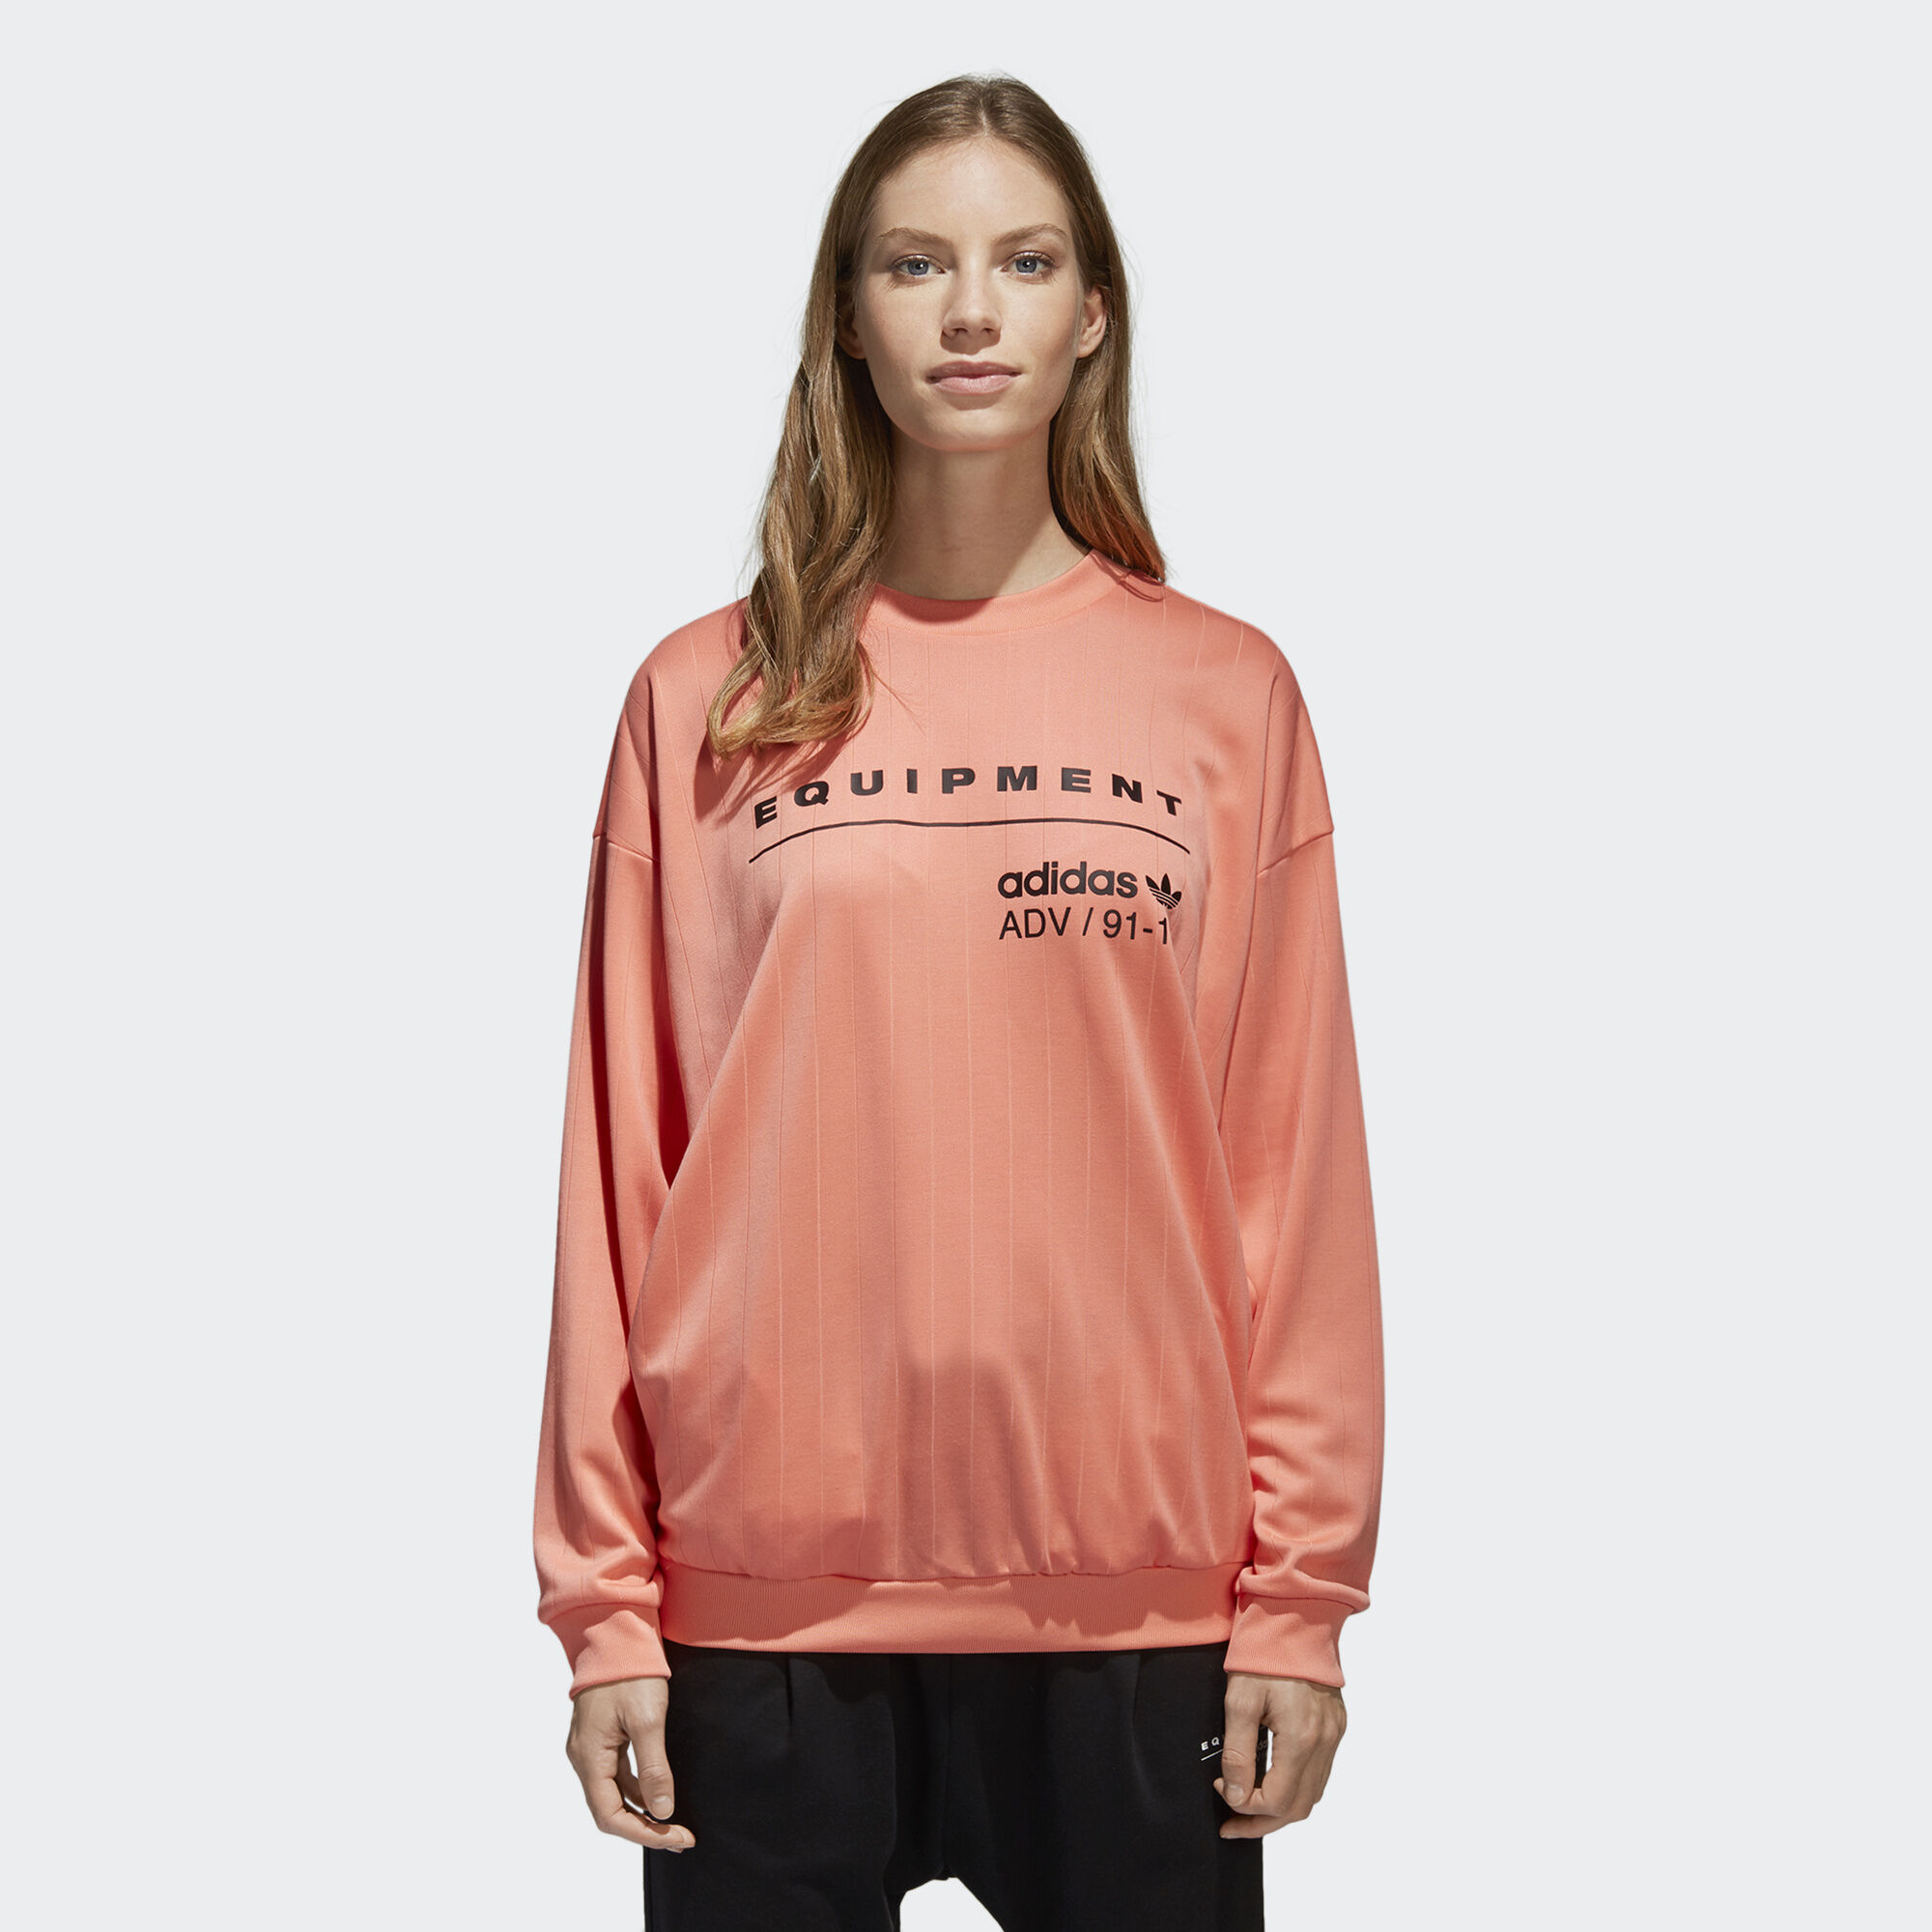 Adidas Eqt Sweatshirt Orange Adidas Europe Africa